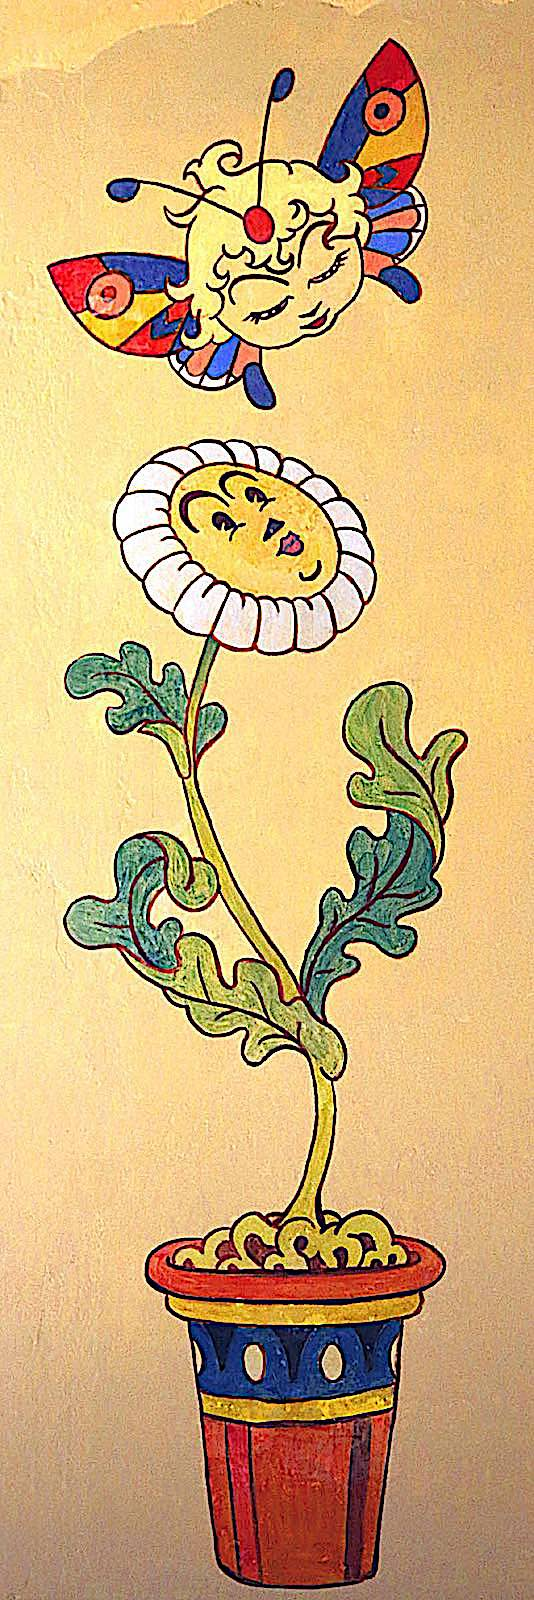 an Antonio Rubino children's book illustration of a butterfly meeting a potted flower